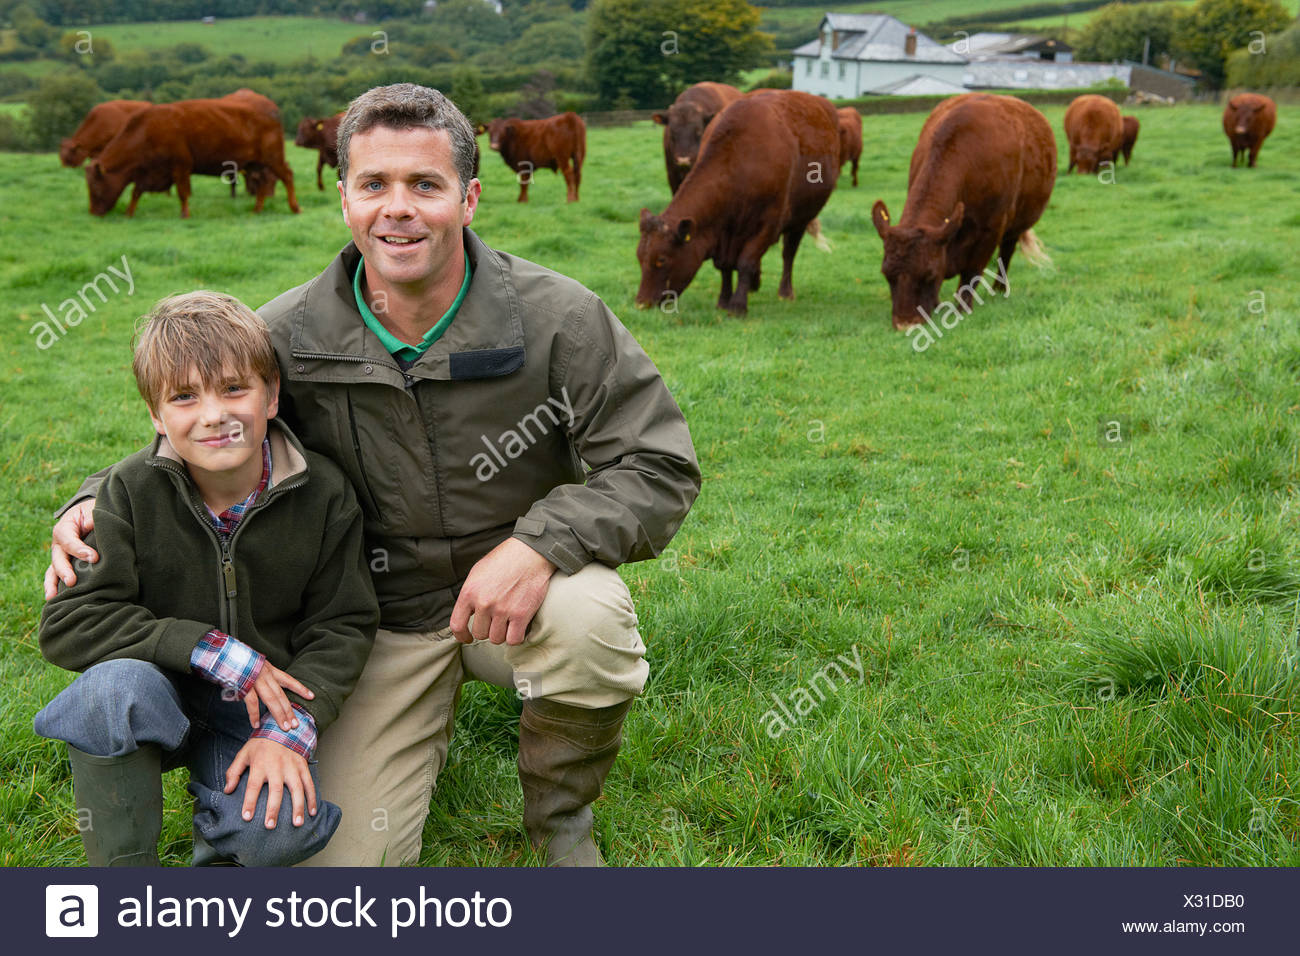 Father and son on farm with cows - Stock Image